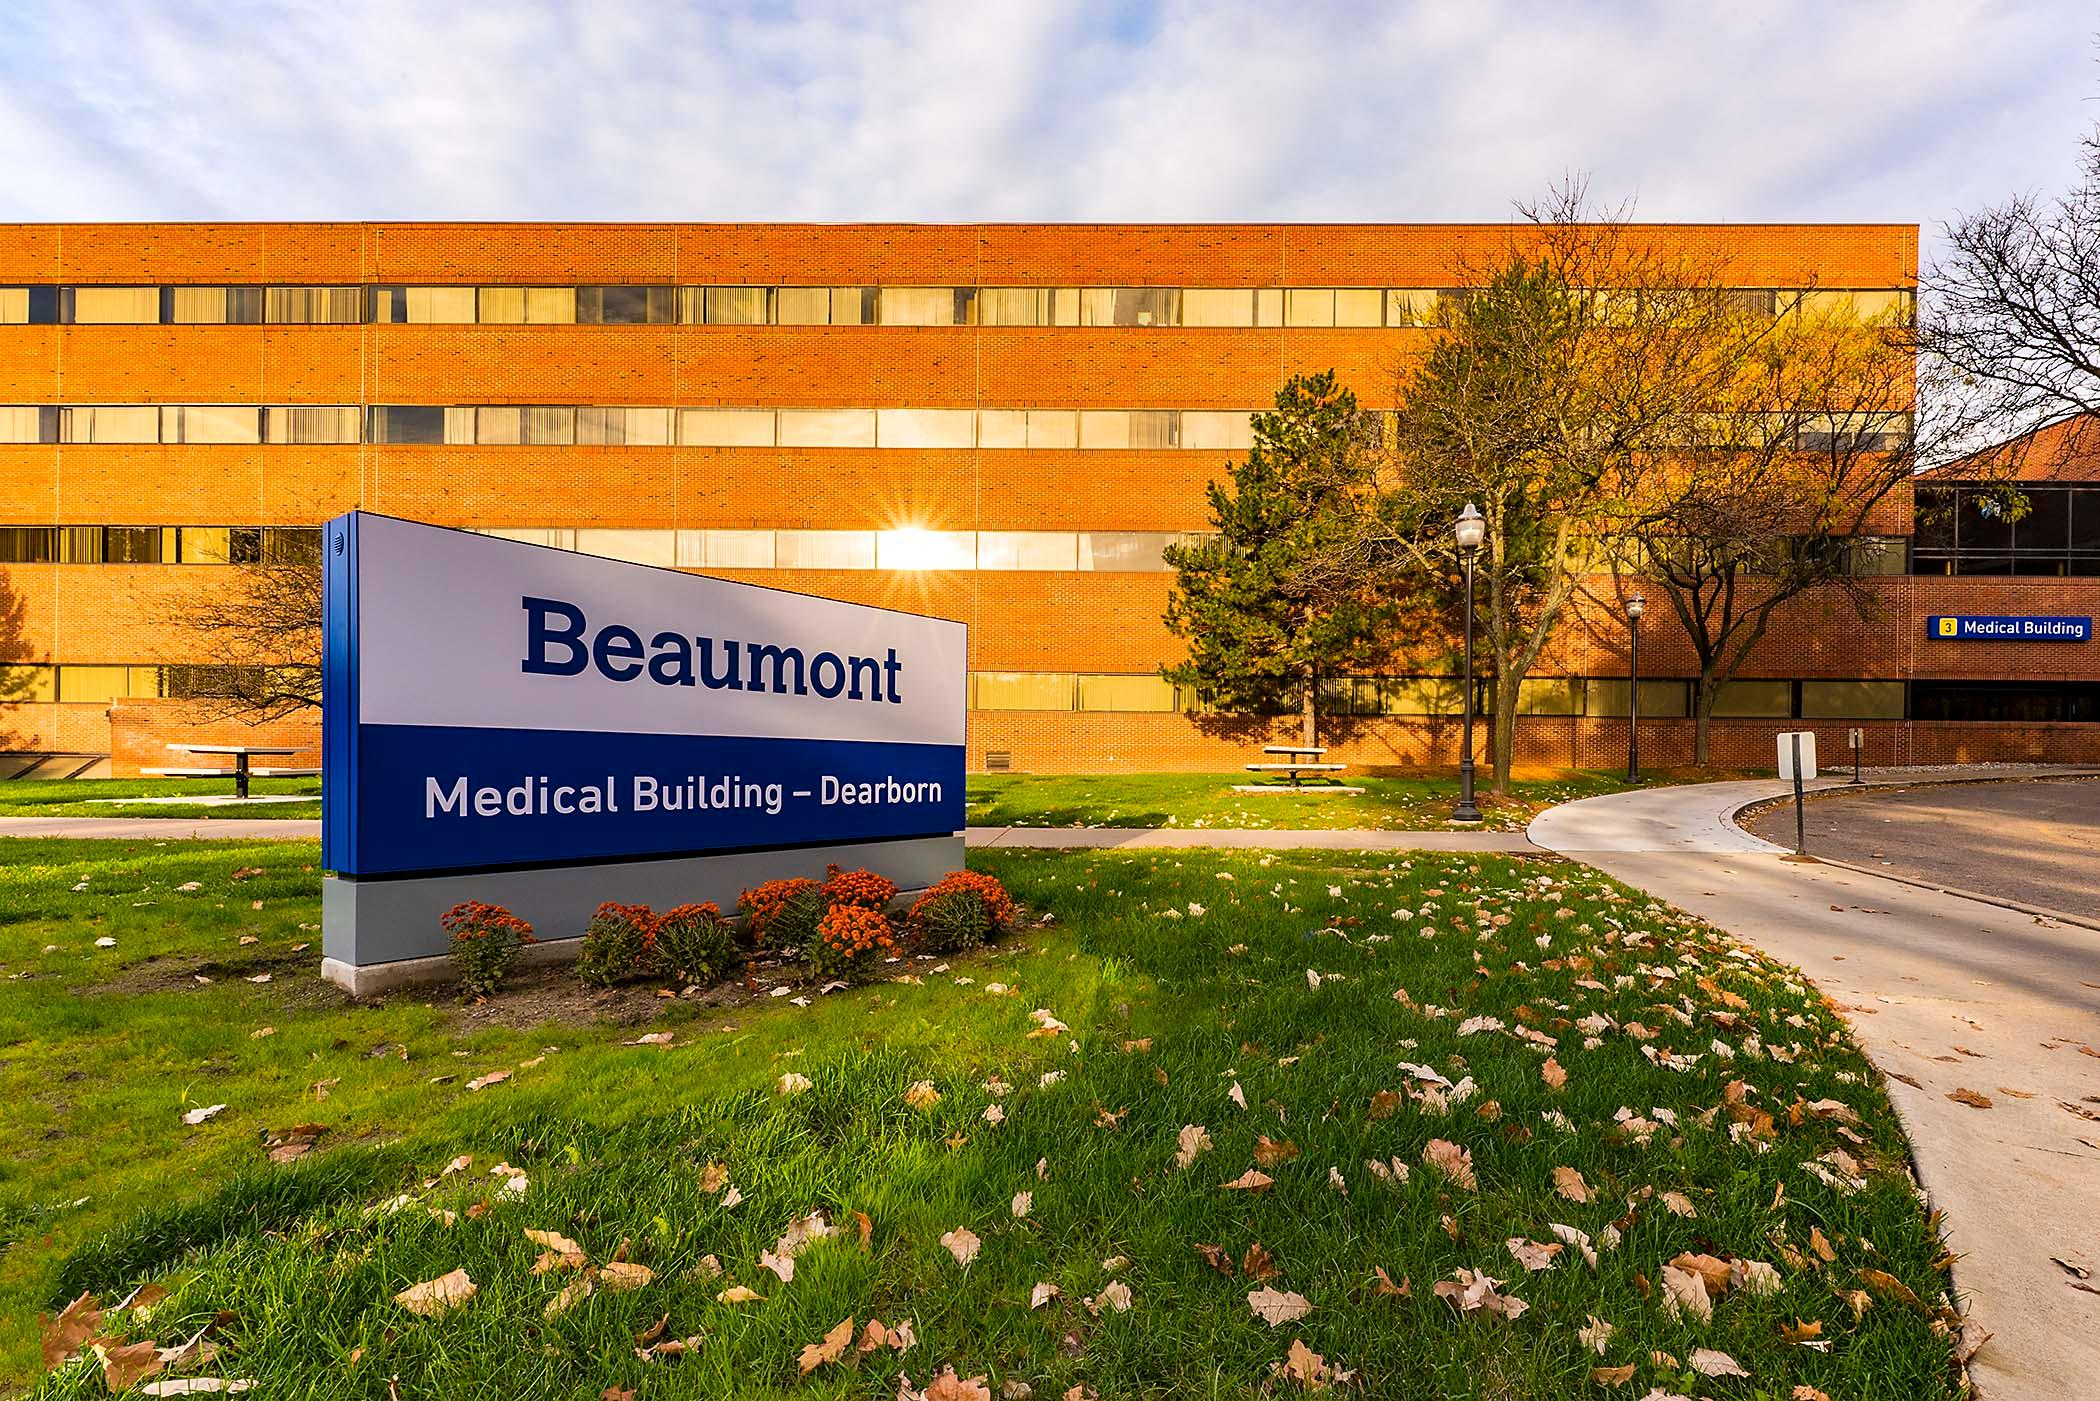 Beaumont Medical Building - Dearborn image 1